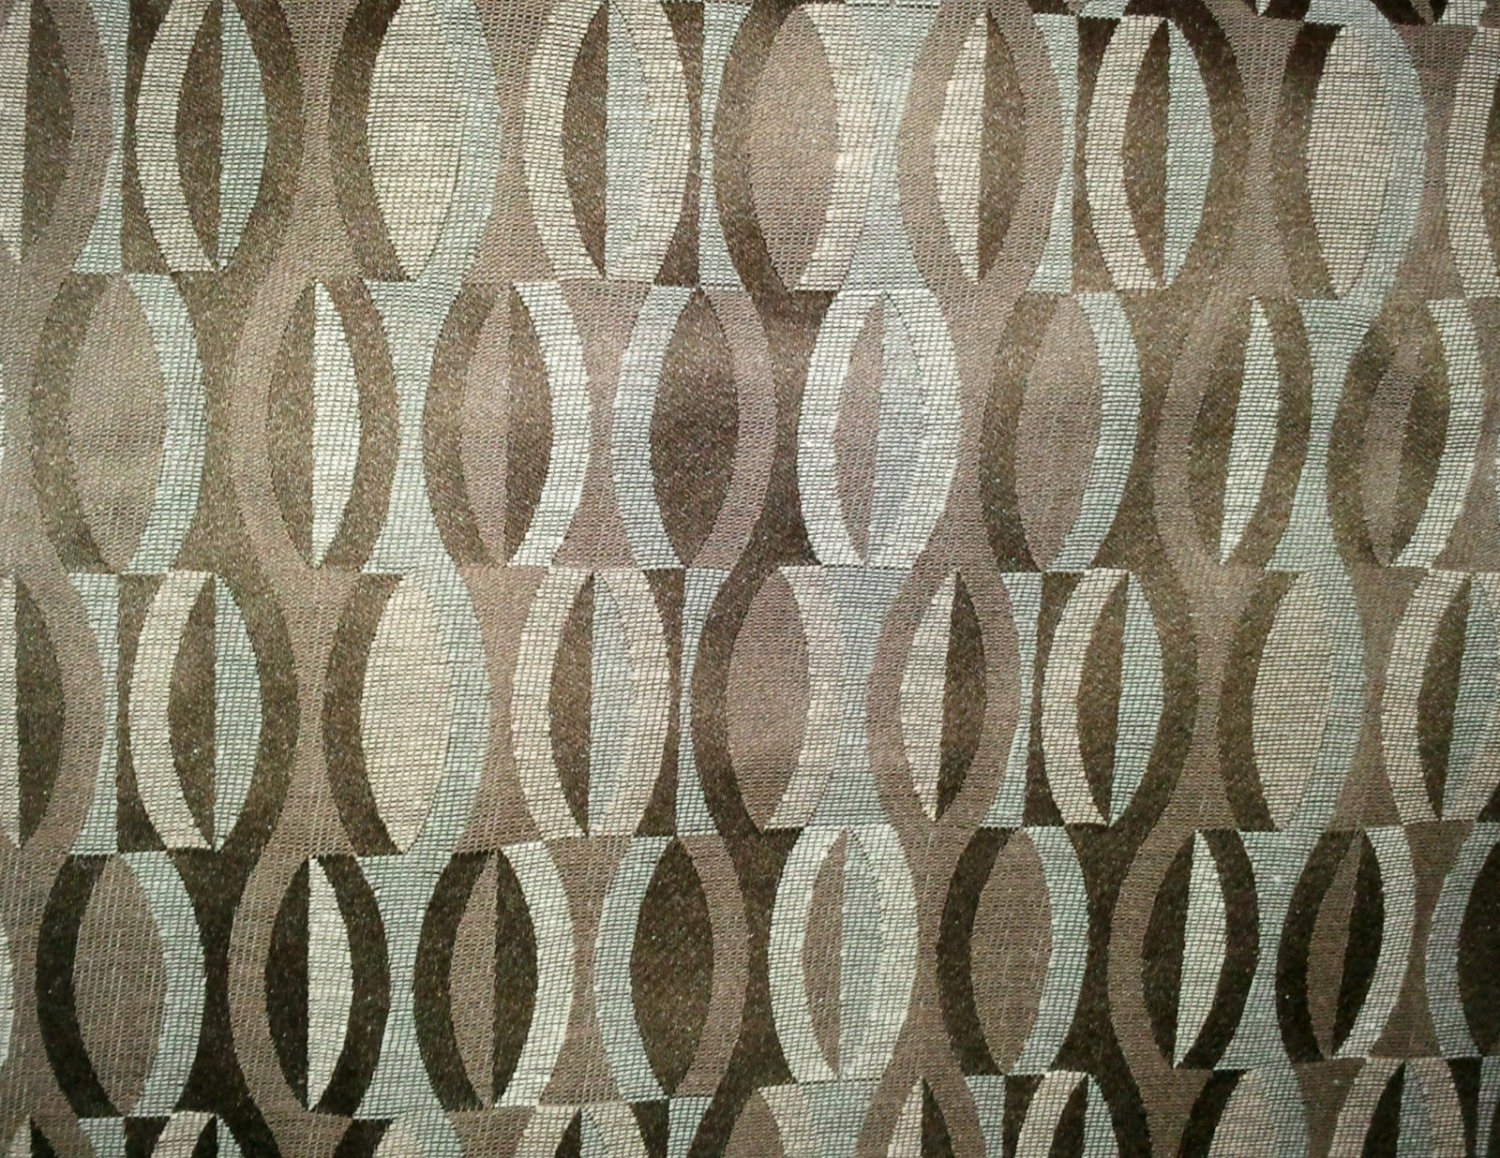 Shades of Brown & Beige Upholstery Fabric 1 yard Remnant Split Ovals